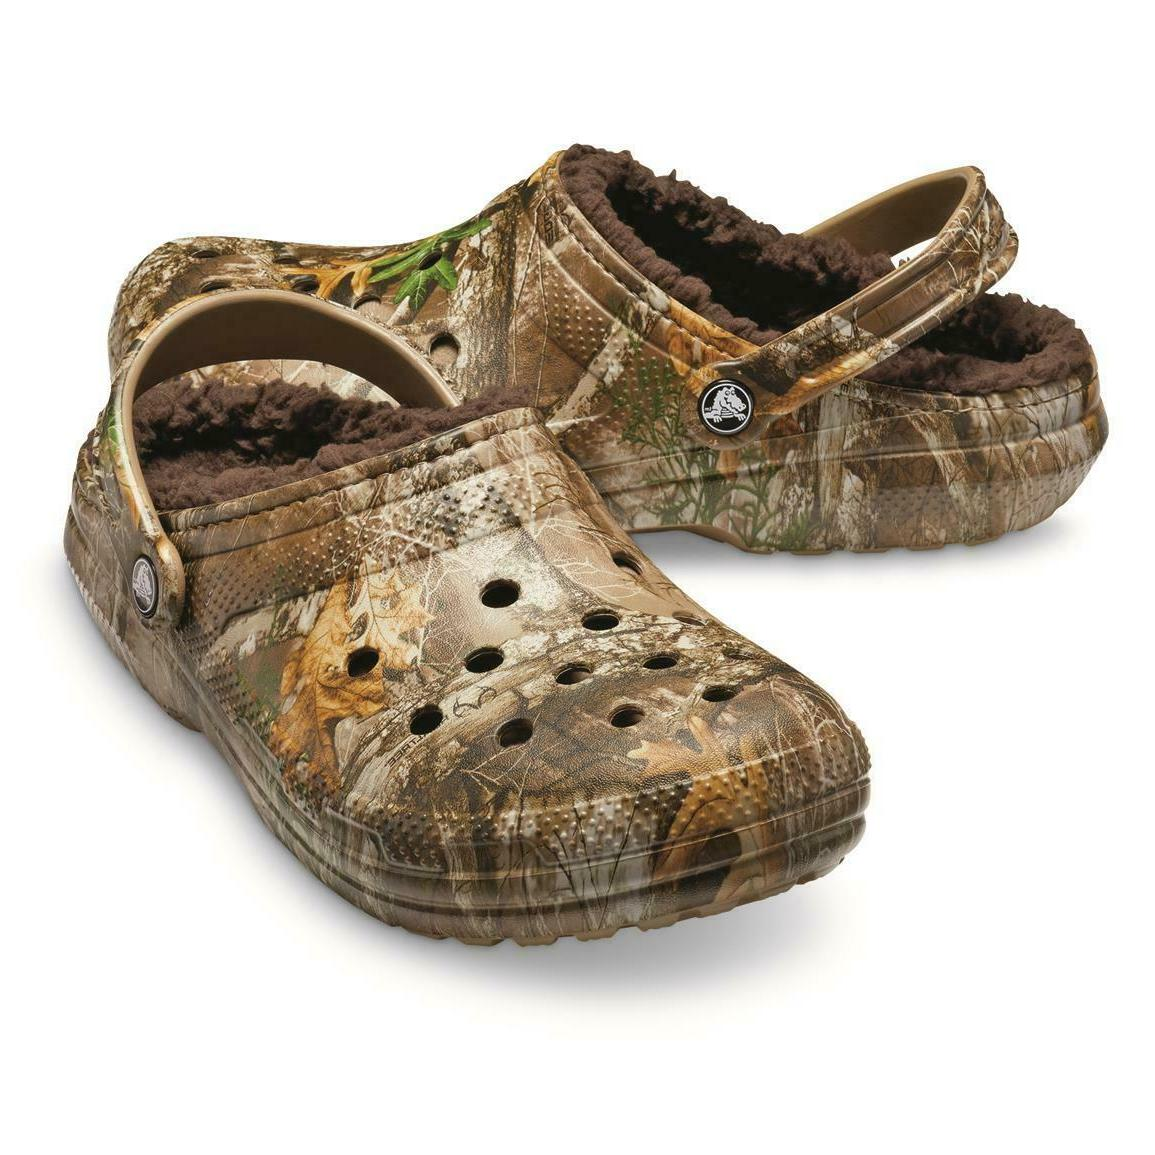 Realtree CROCS Fuzzy Clogs Slippers